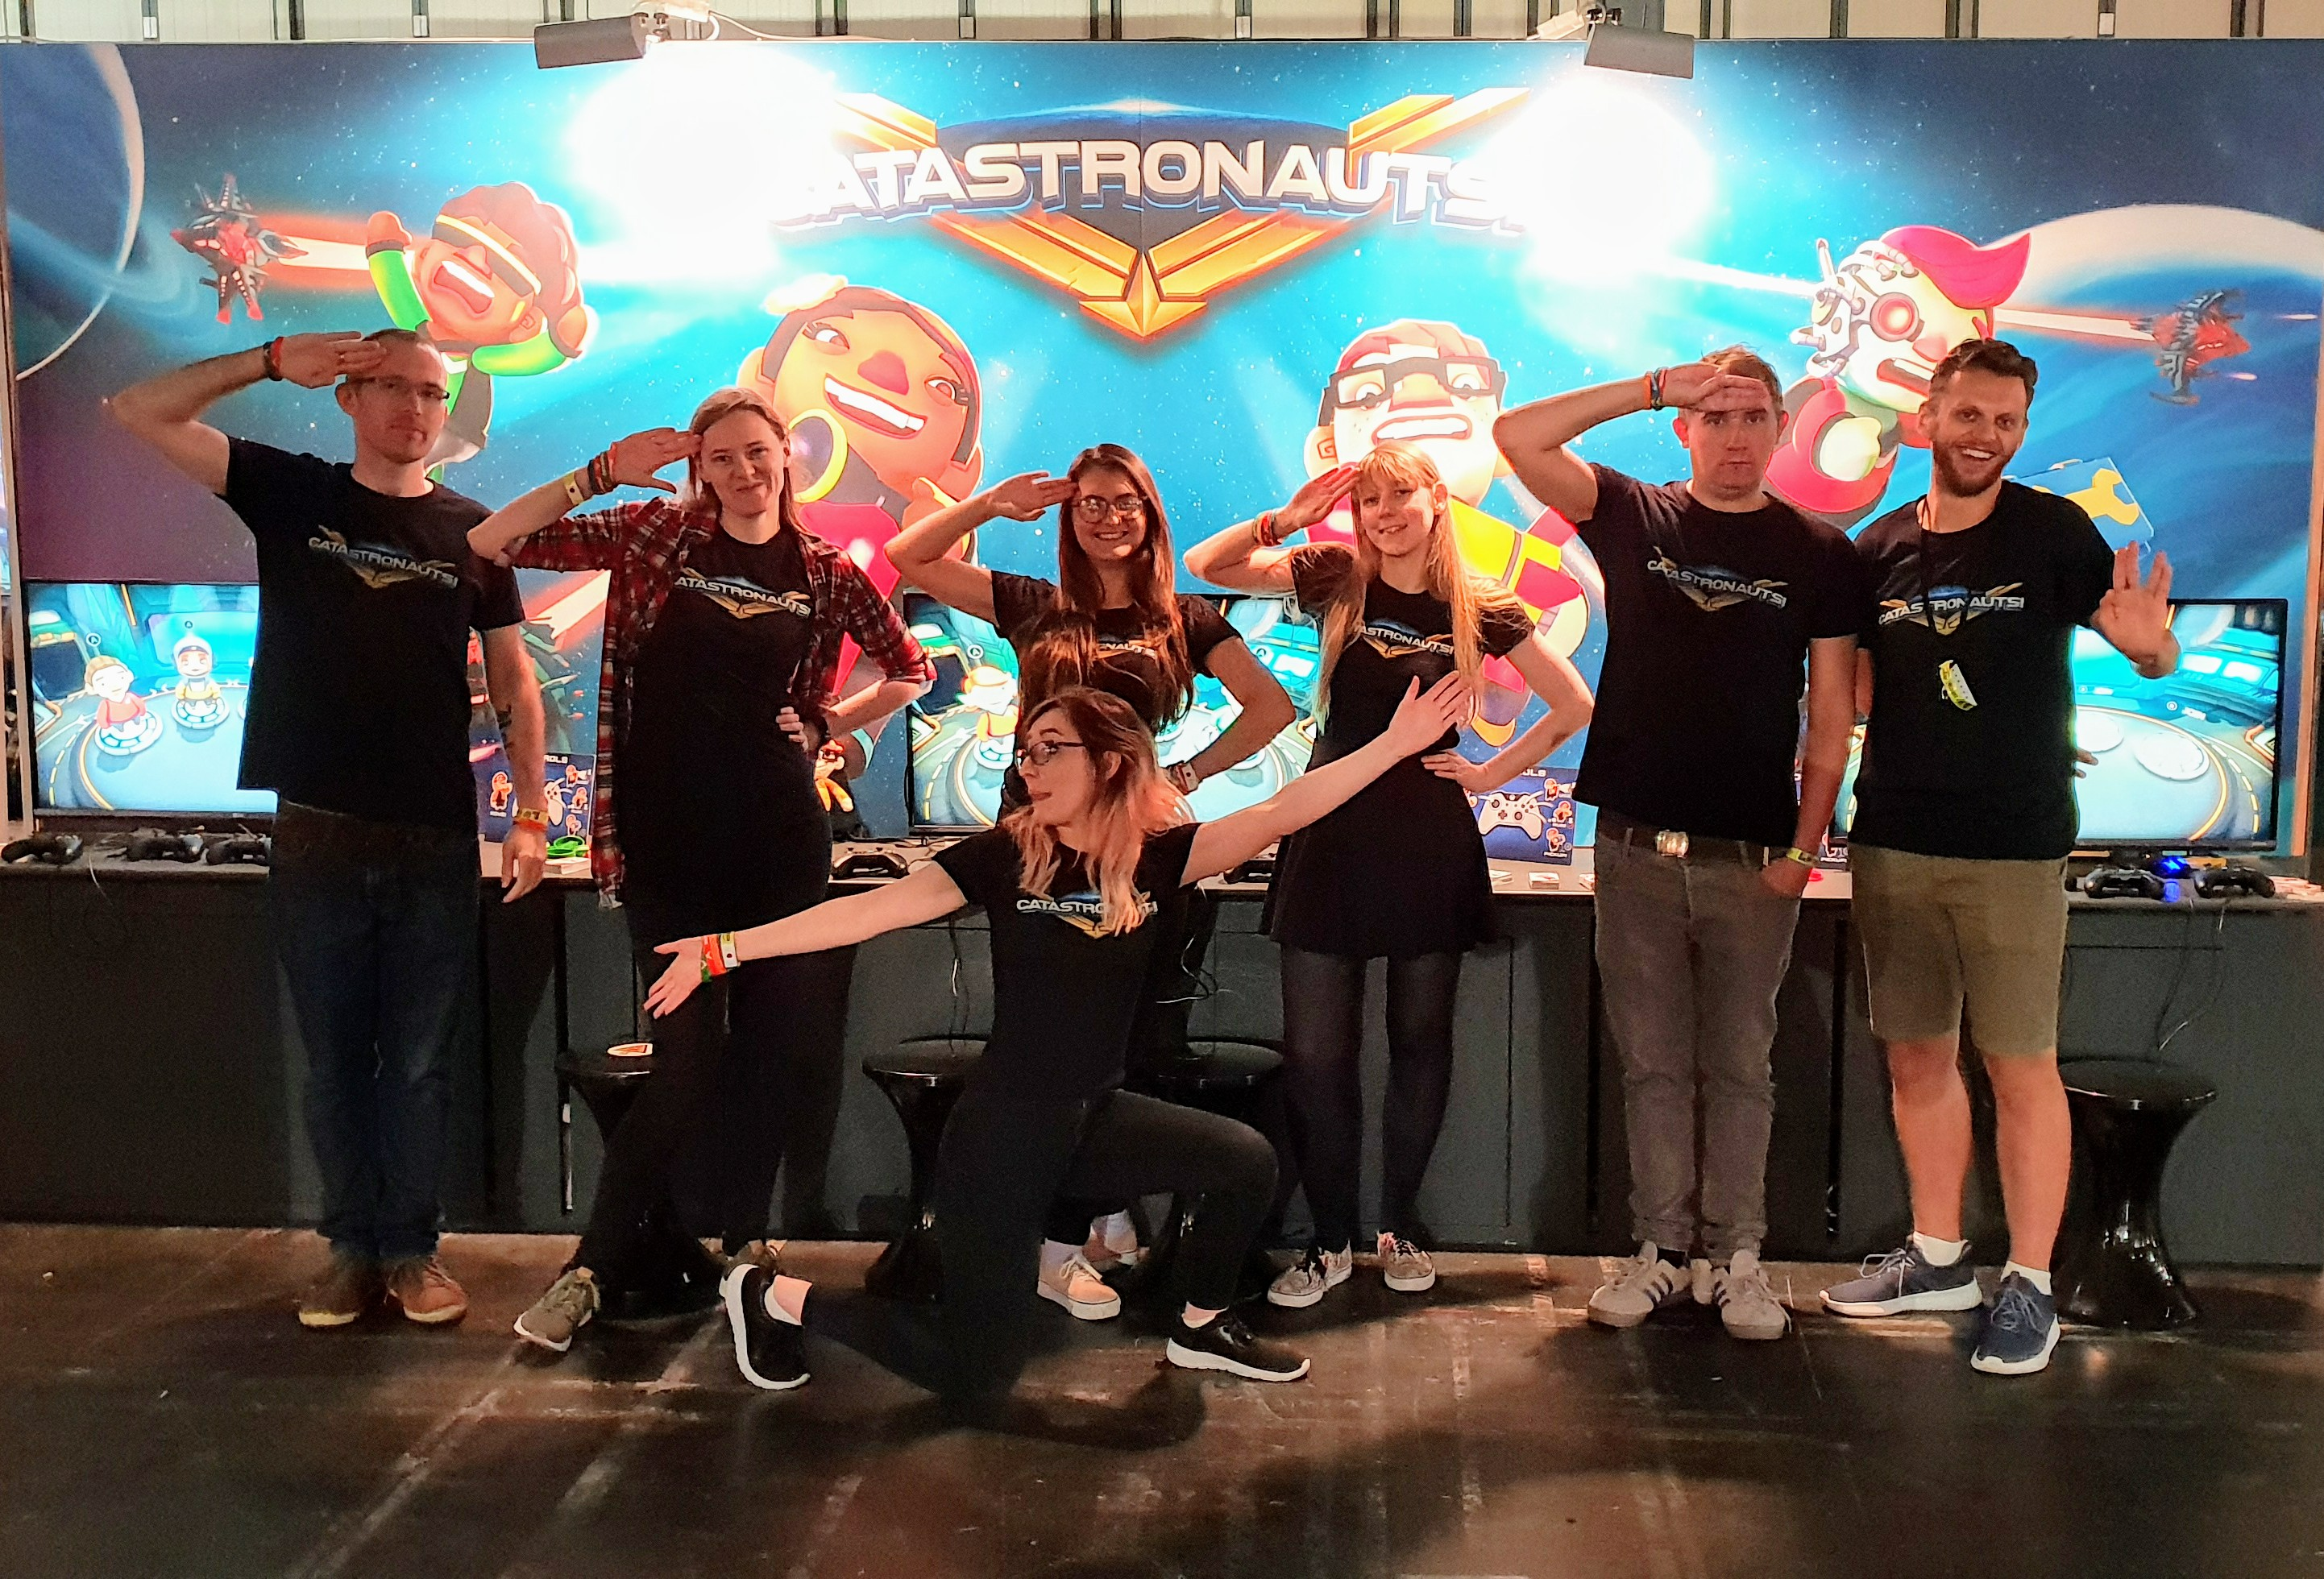 The group of us doing funny poses (mainly salutes) in front of our EGX stand, wearing Catastronauts t-shirts